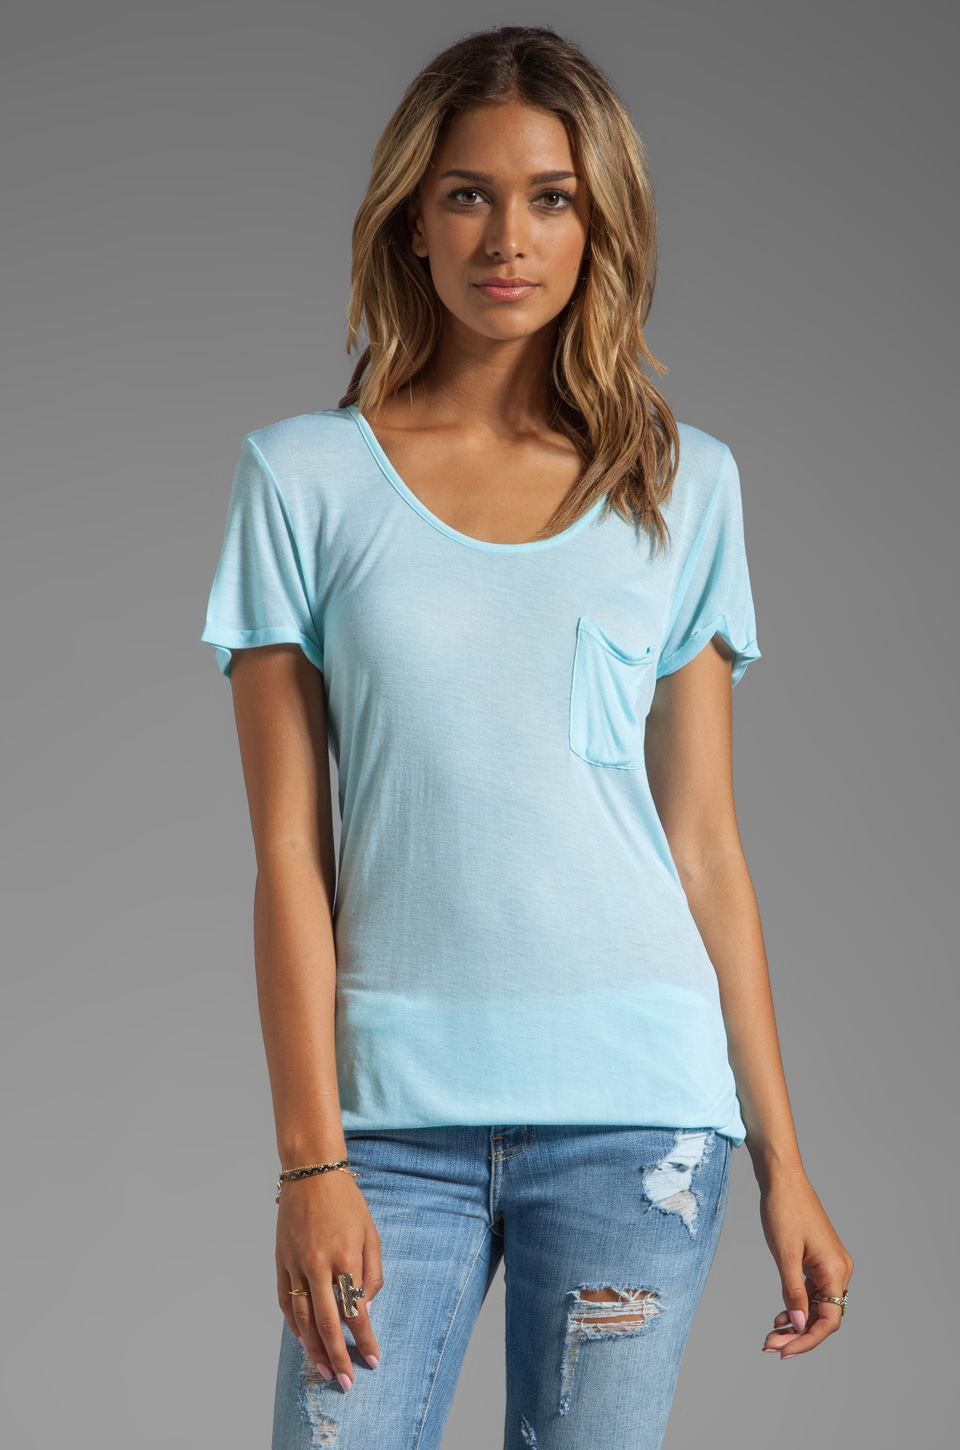 LA Made Rolled-Up Open Neck Tee in Petite Blue